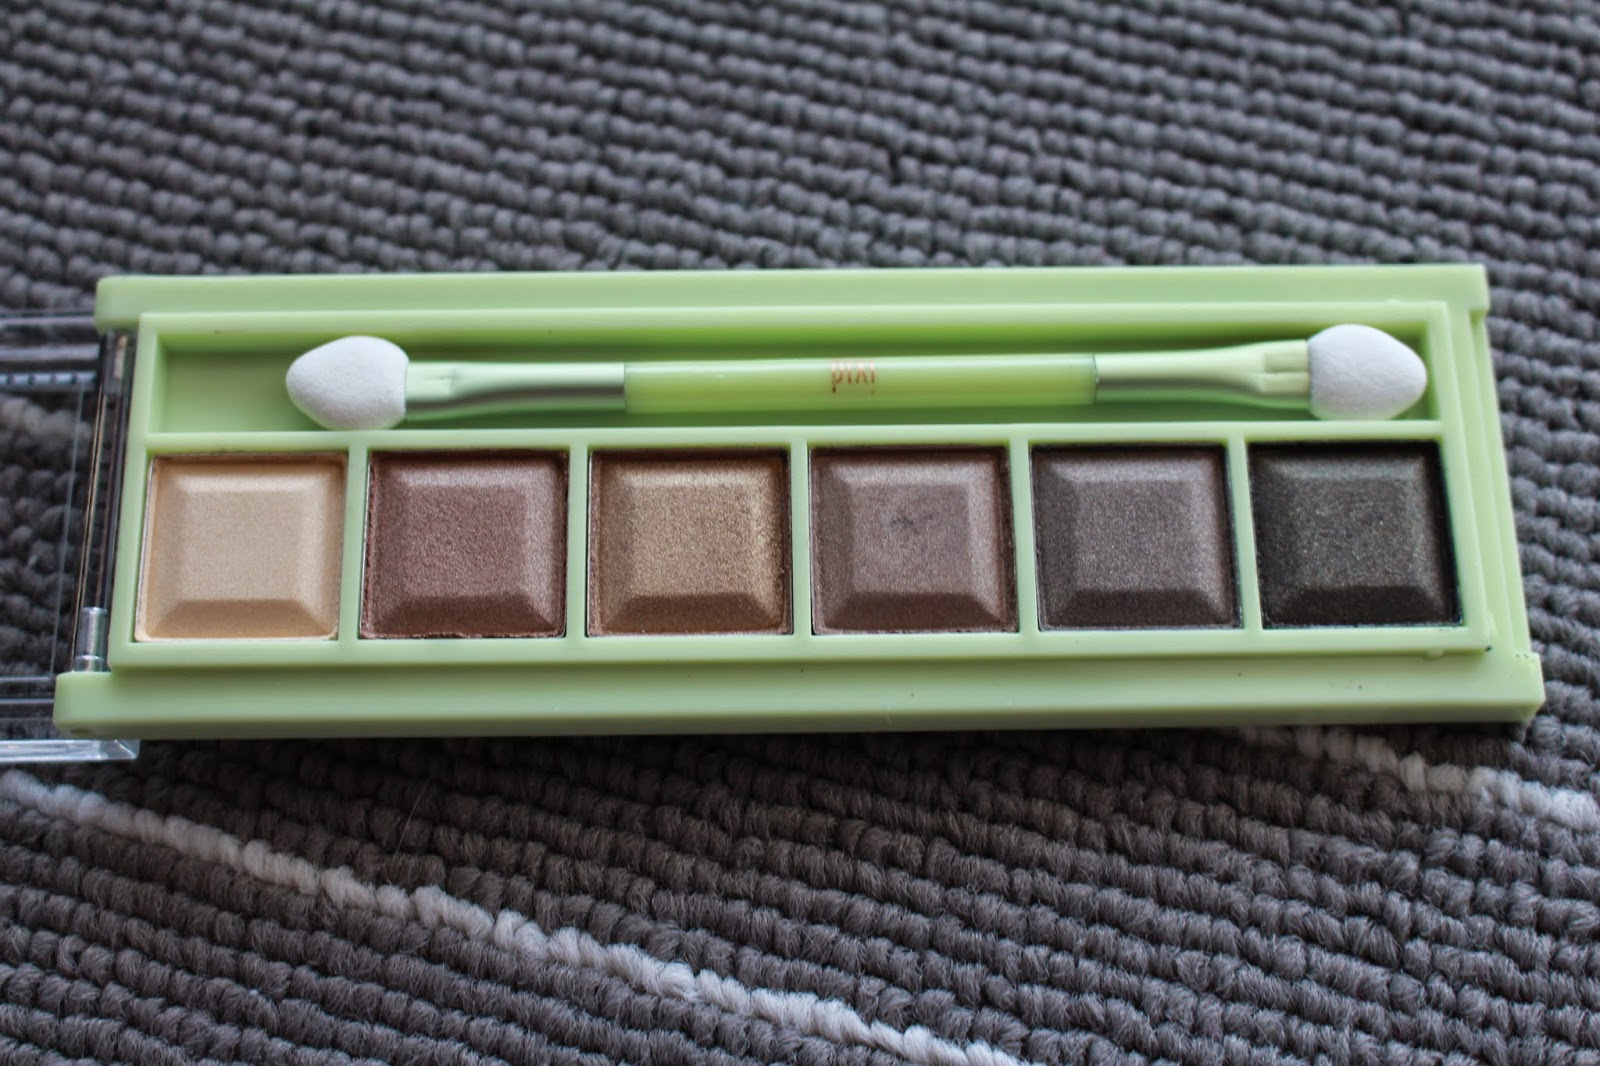 Pixi by Petra Mesmerising Mineral Palette Review and Swatches - Rich Gold